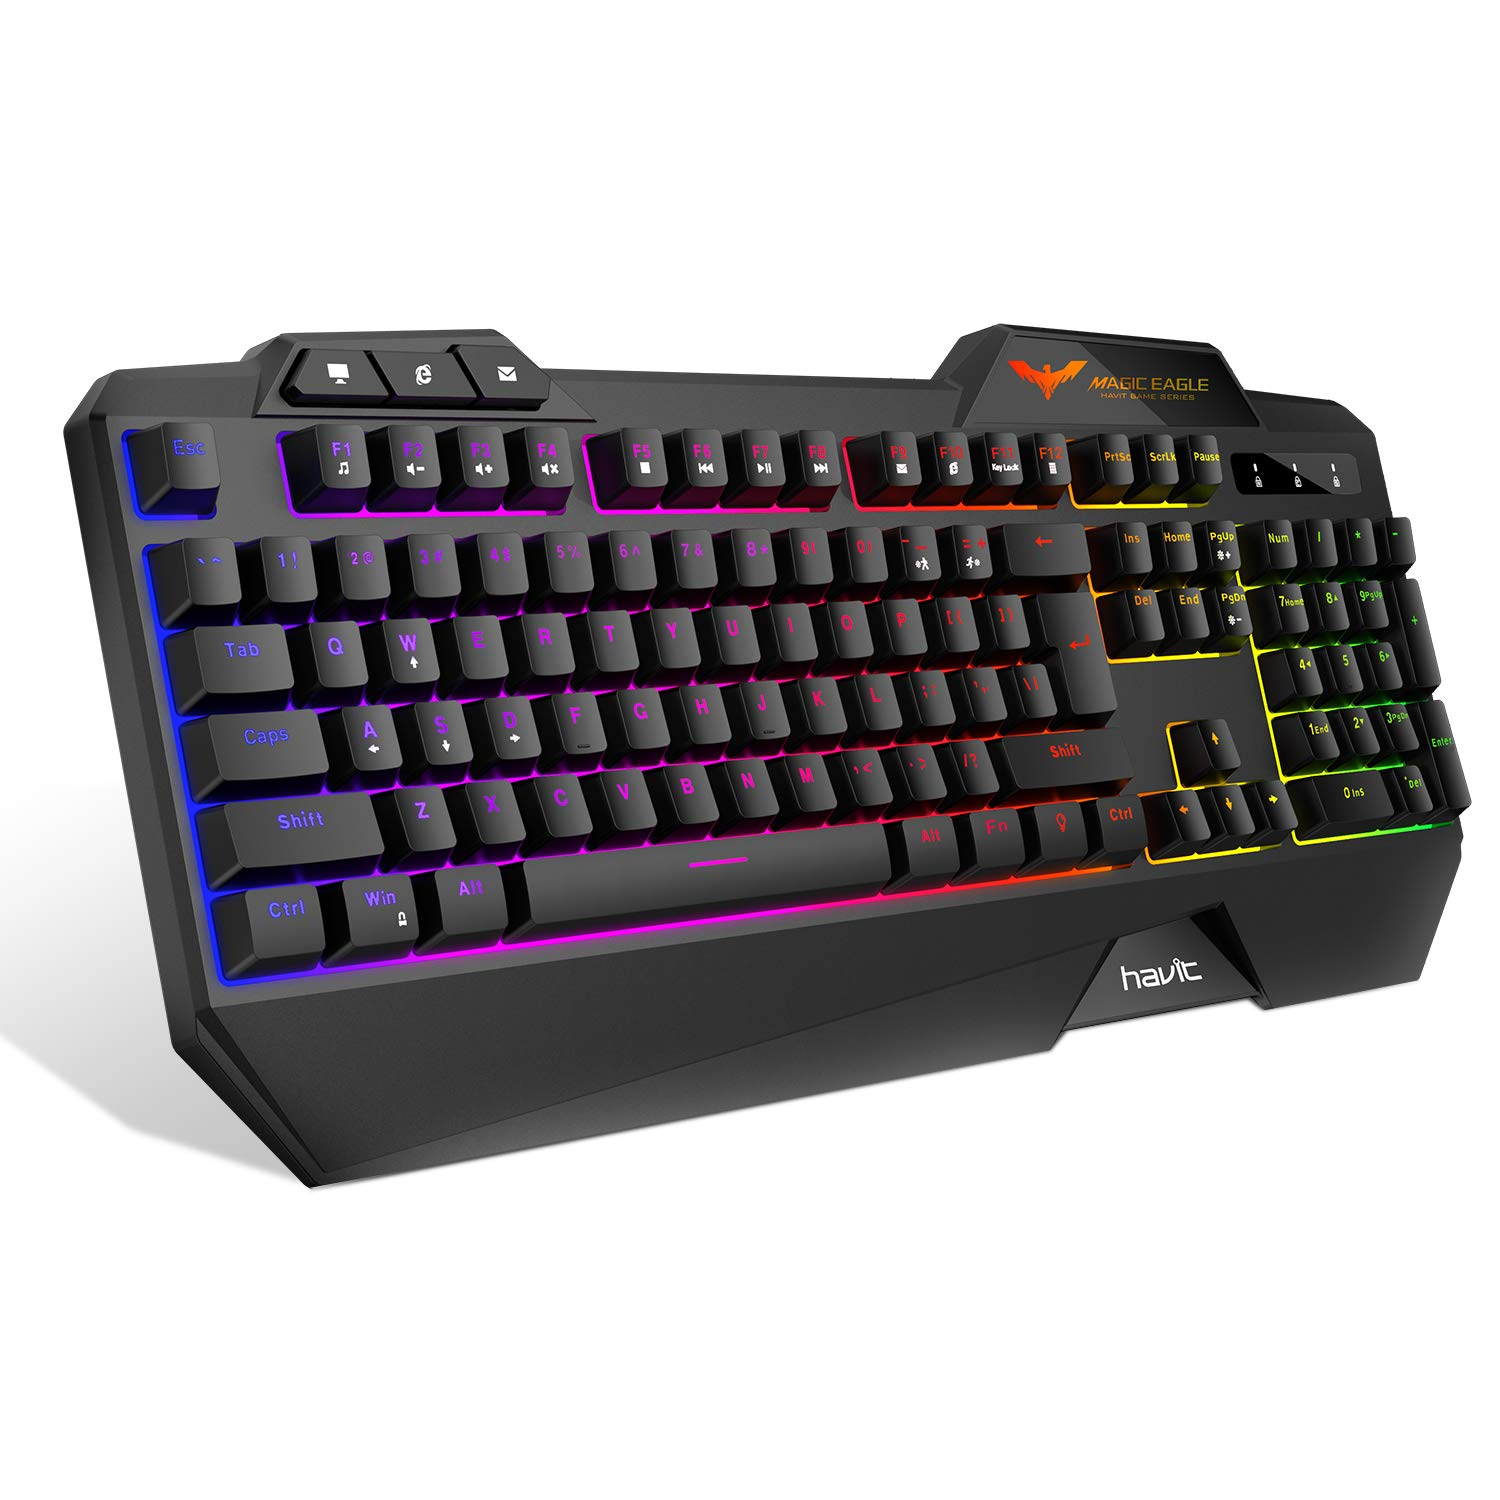 HAVIT Rainbow Backlit Wired Gaming Keyboard 104 Keys LED USB Ergonomic Wrist Rest Keyboard for Windows PC Gamer Desktop, Computer (Black)